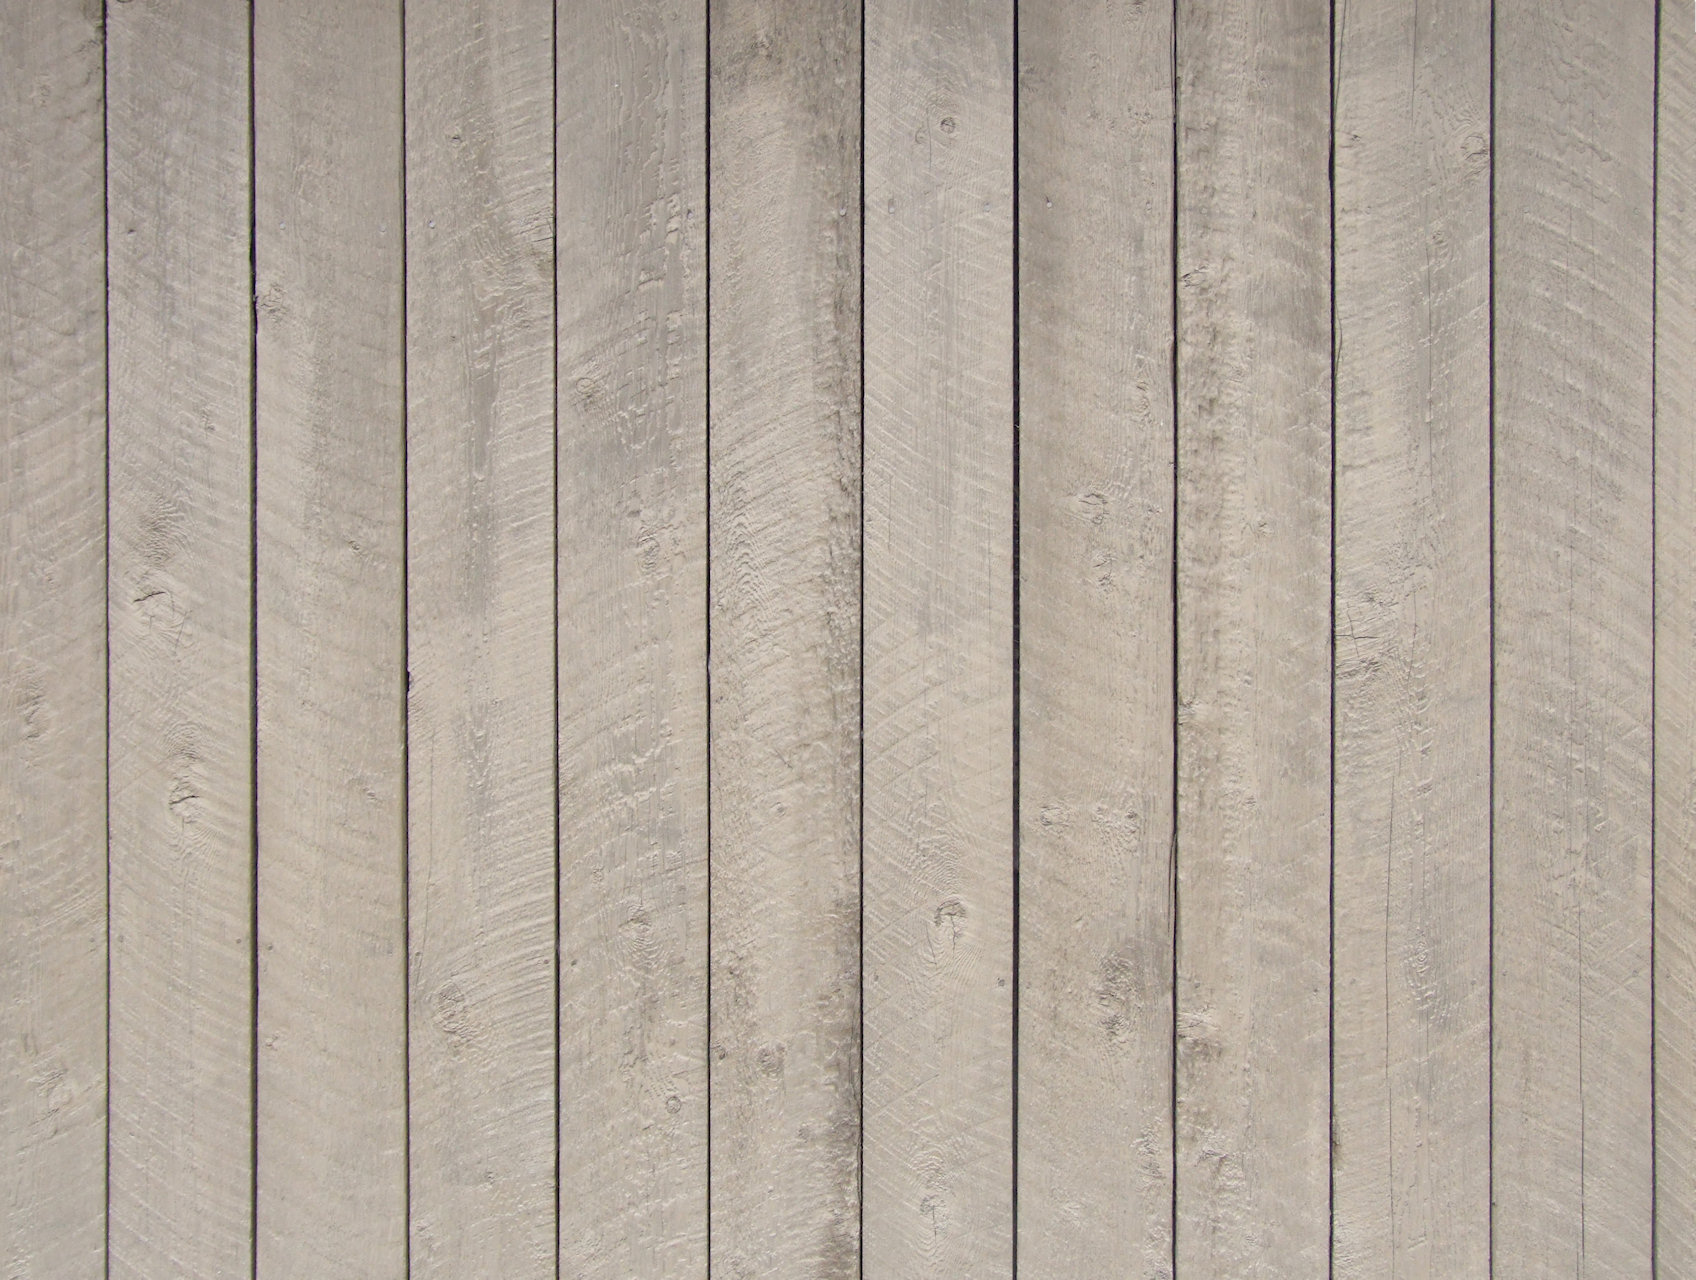 Wood Textured wall panels in wheat for wall decor inspiration